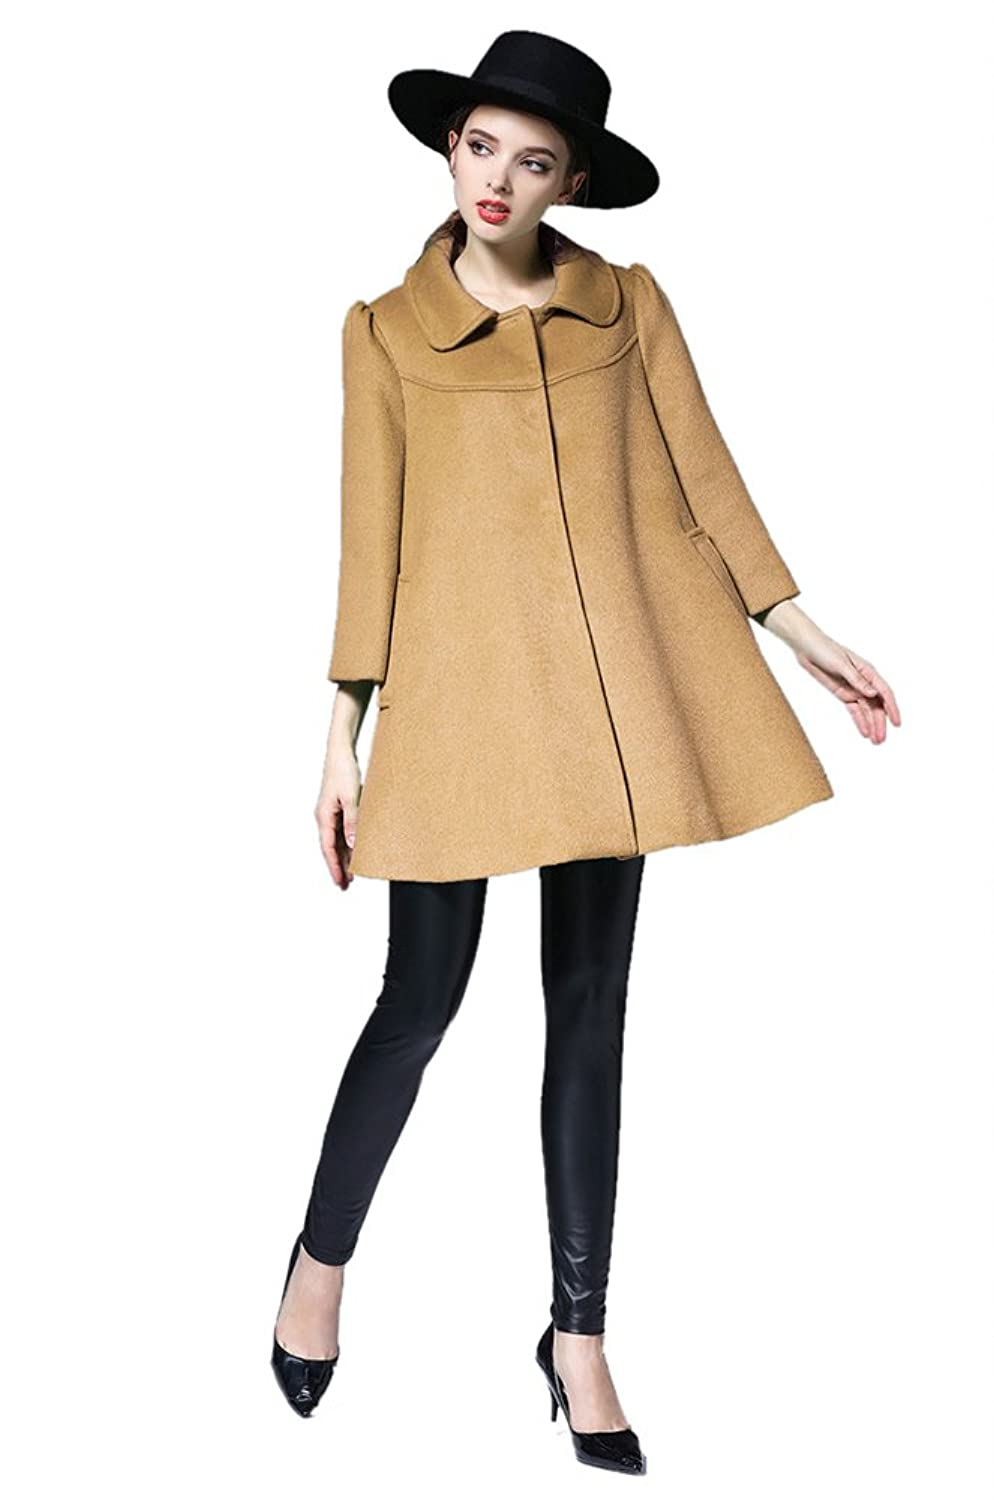 Oncefirst Women's Solid Color Oversized Wool Trench Coat Cloak